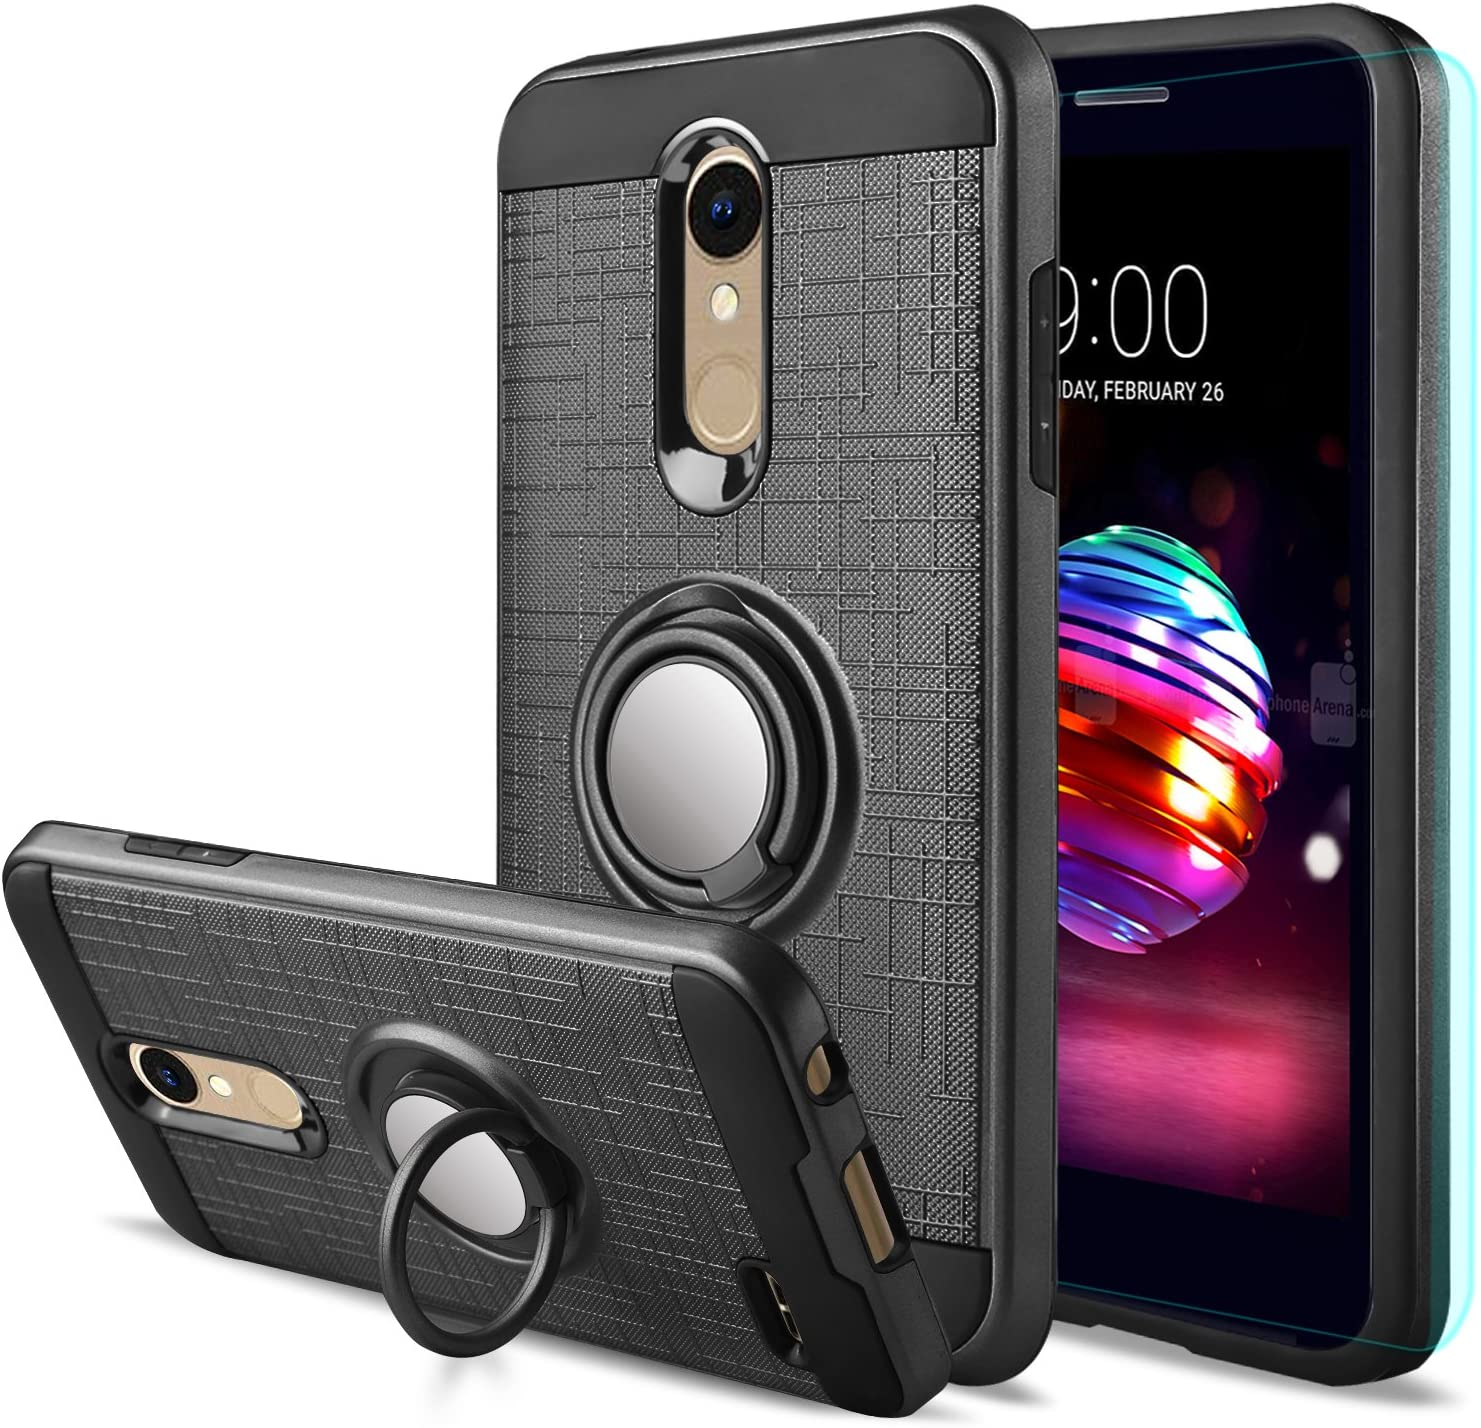 LG K30 Case,LG Phoenix Plus/LG Harmony 2/LG Premier Pro/LG K10 2018 Case with HD Screen Protector,Anoke Cellphone 360 Degree Rotating Ring Holder Kickstand Drop Protective Cover ZS Black